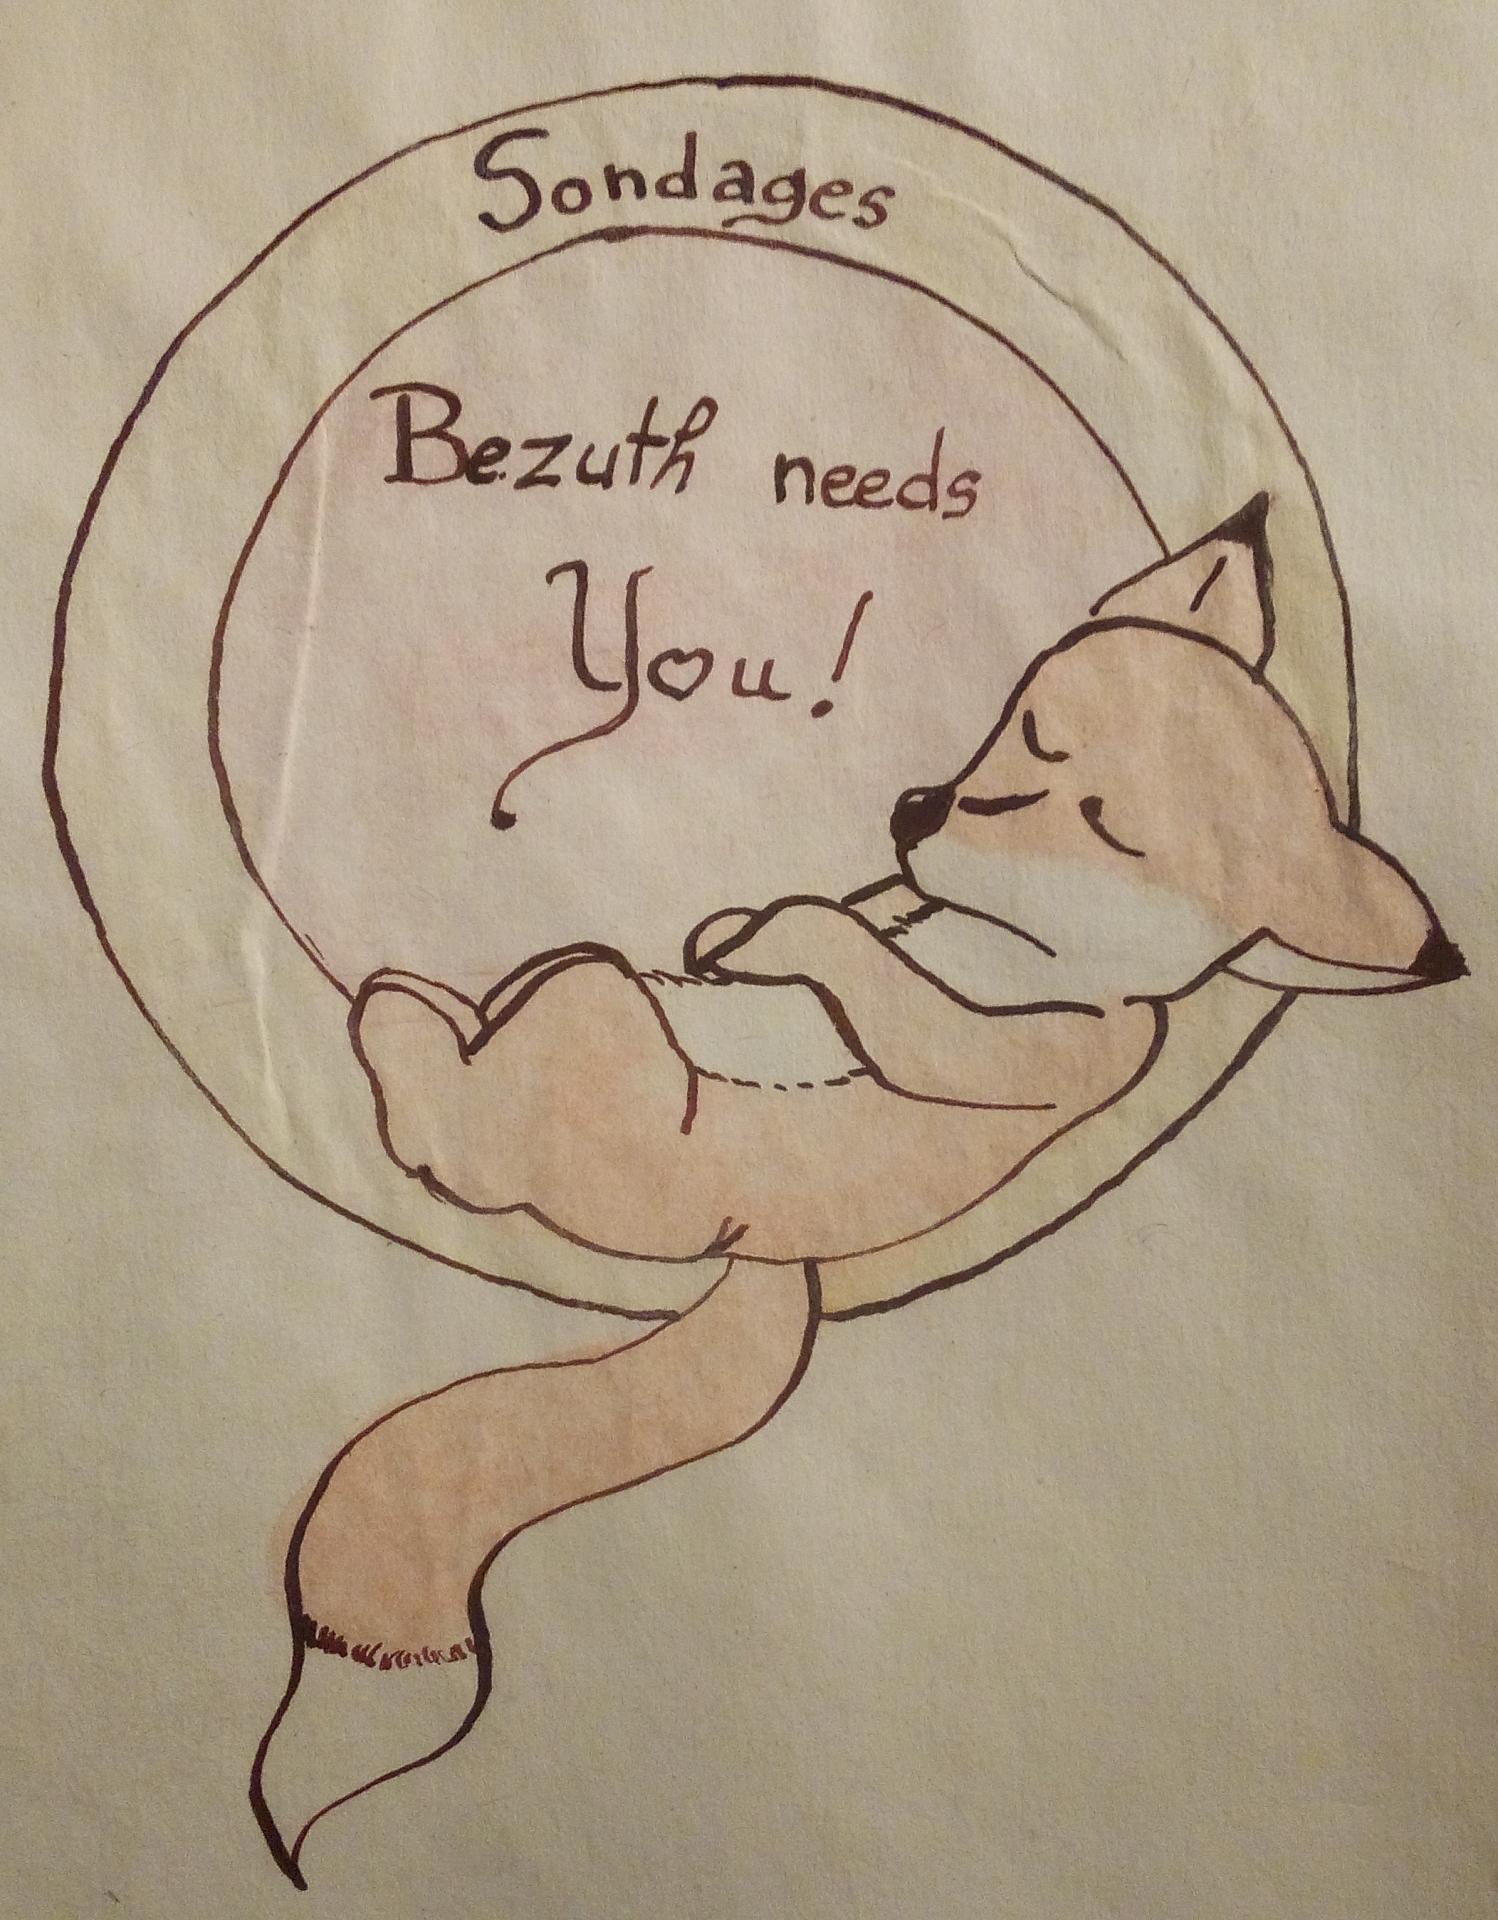 Bezuth needs you